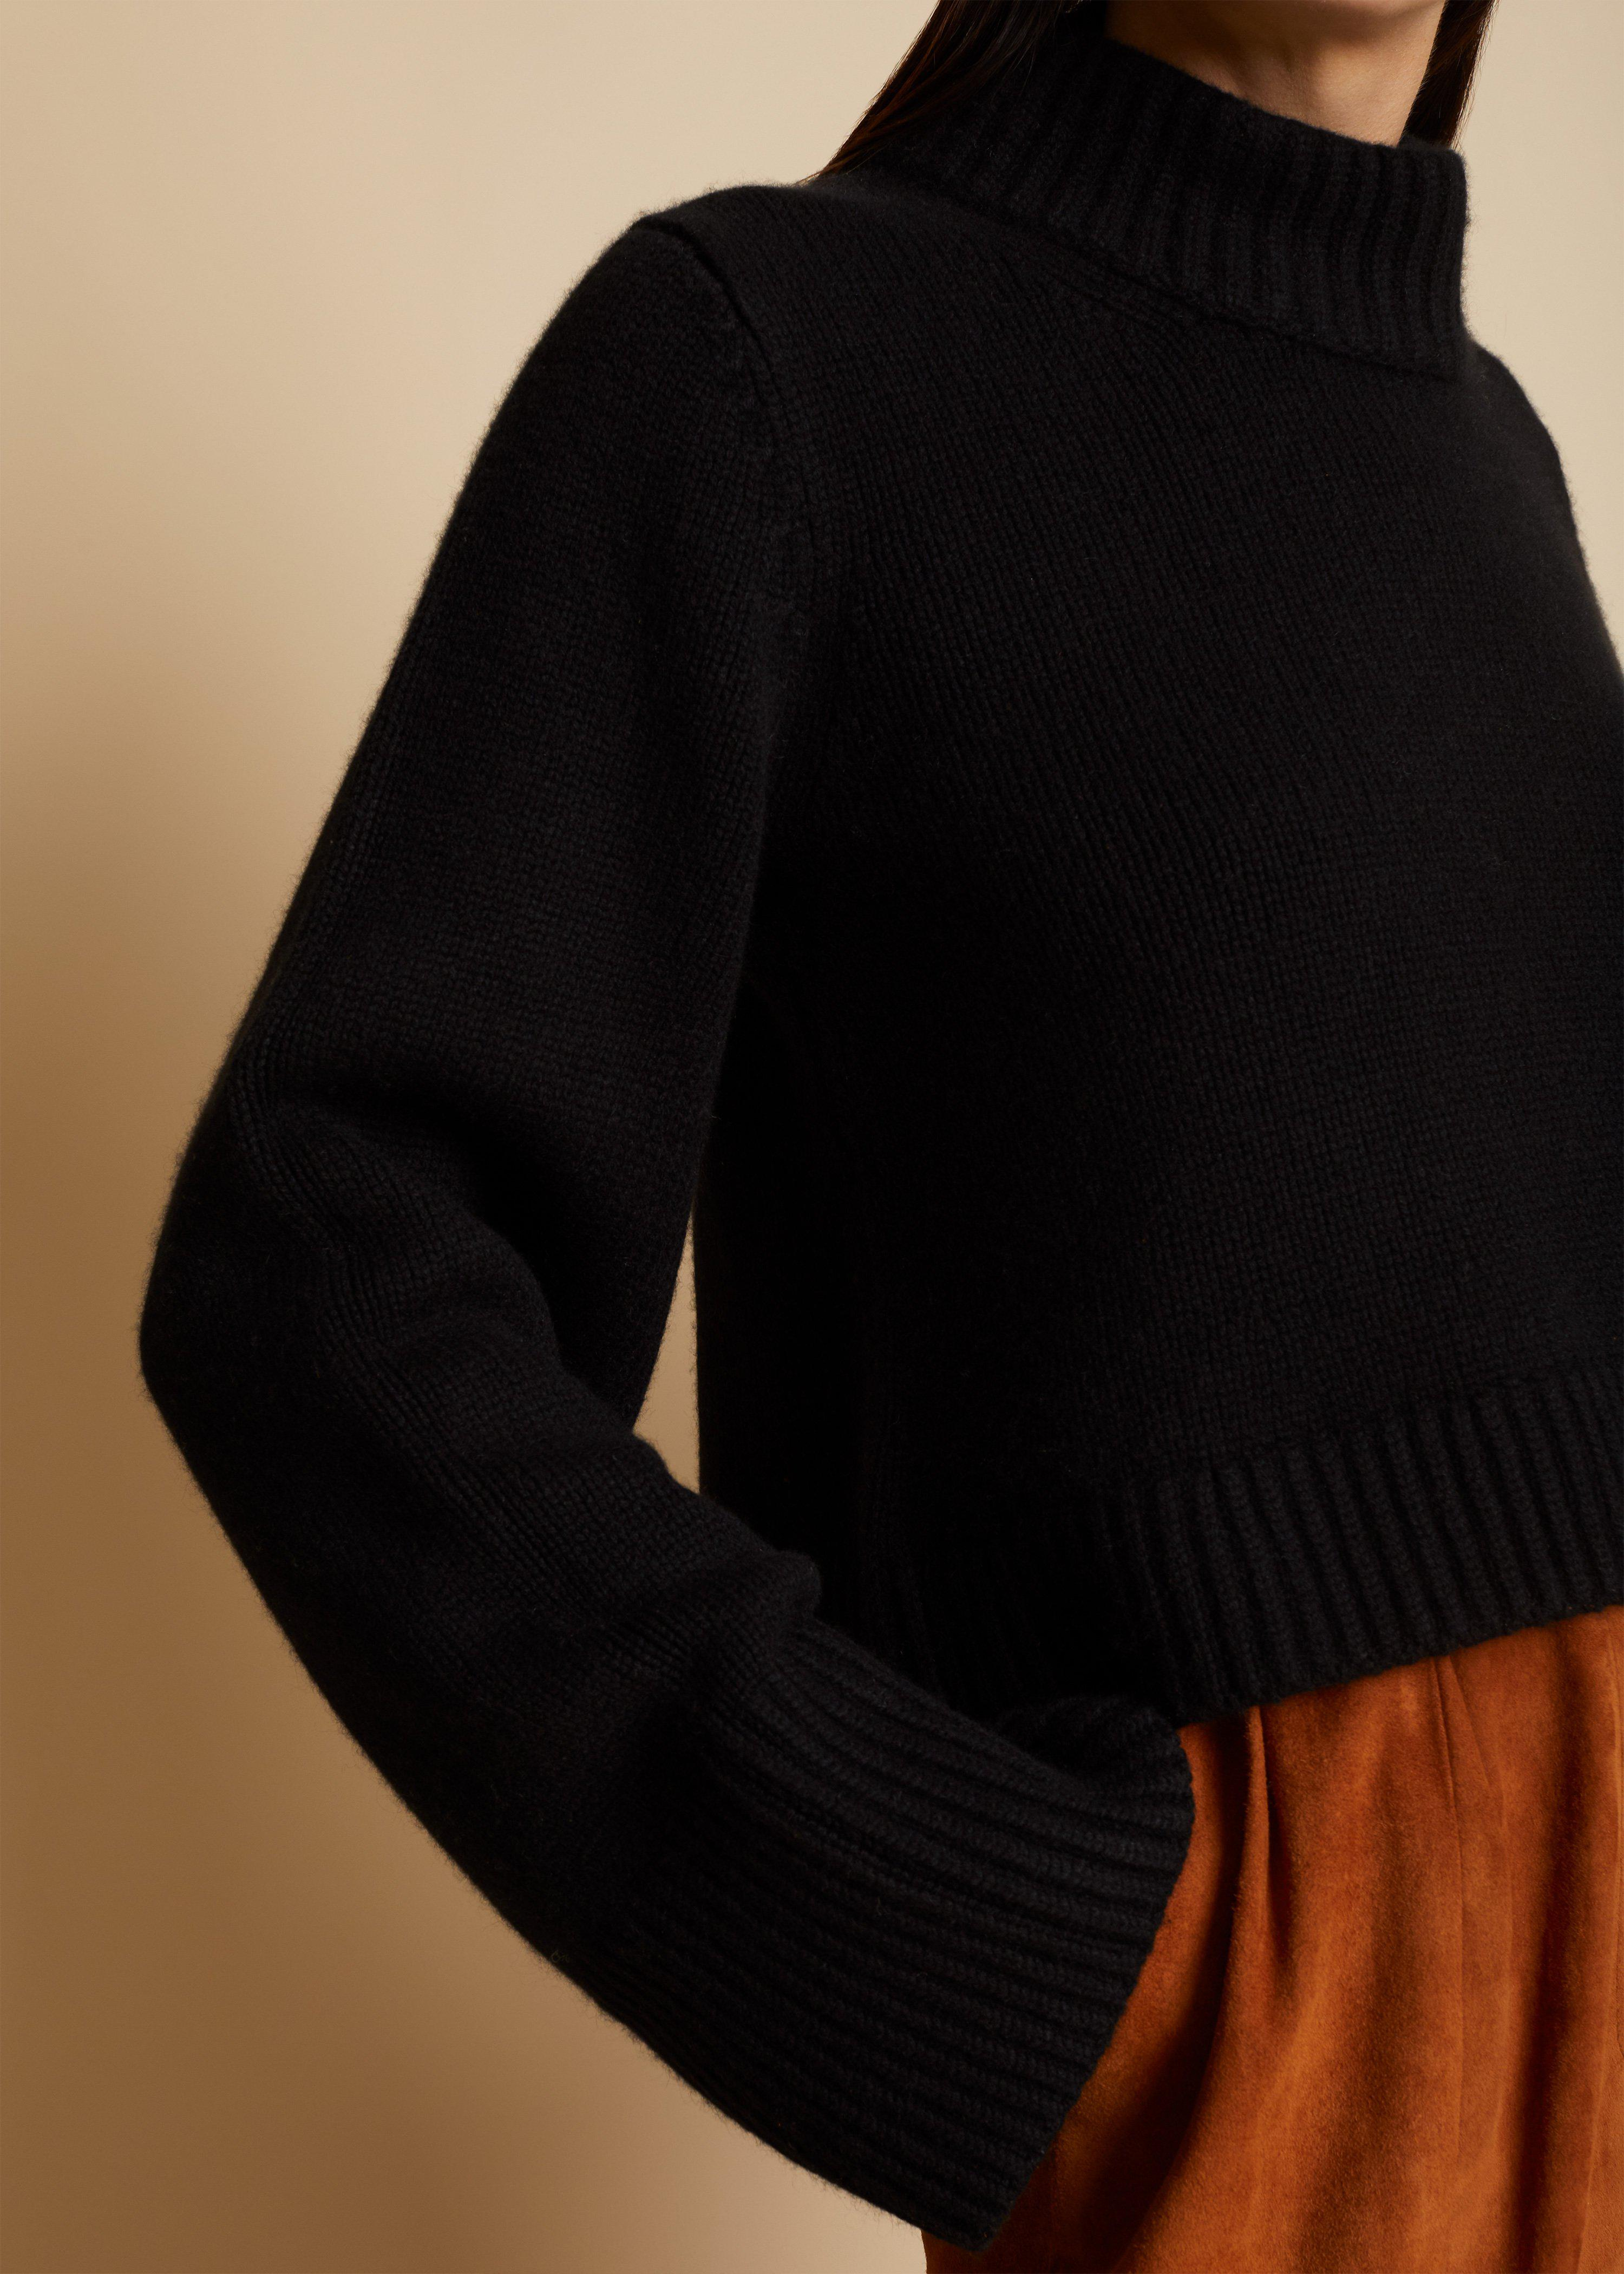 The Lima Sweater in Black 4